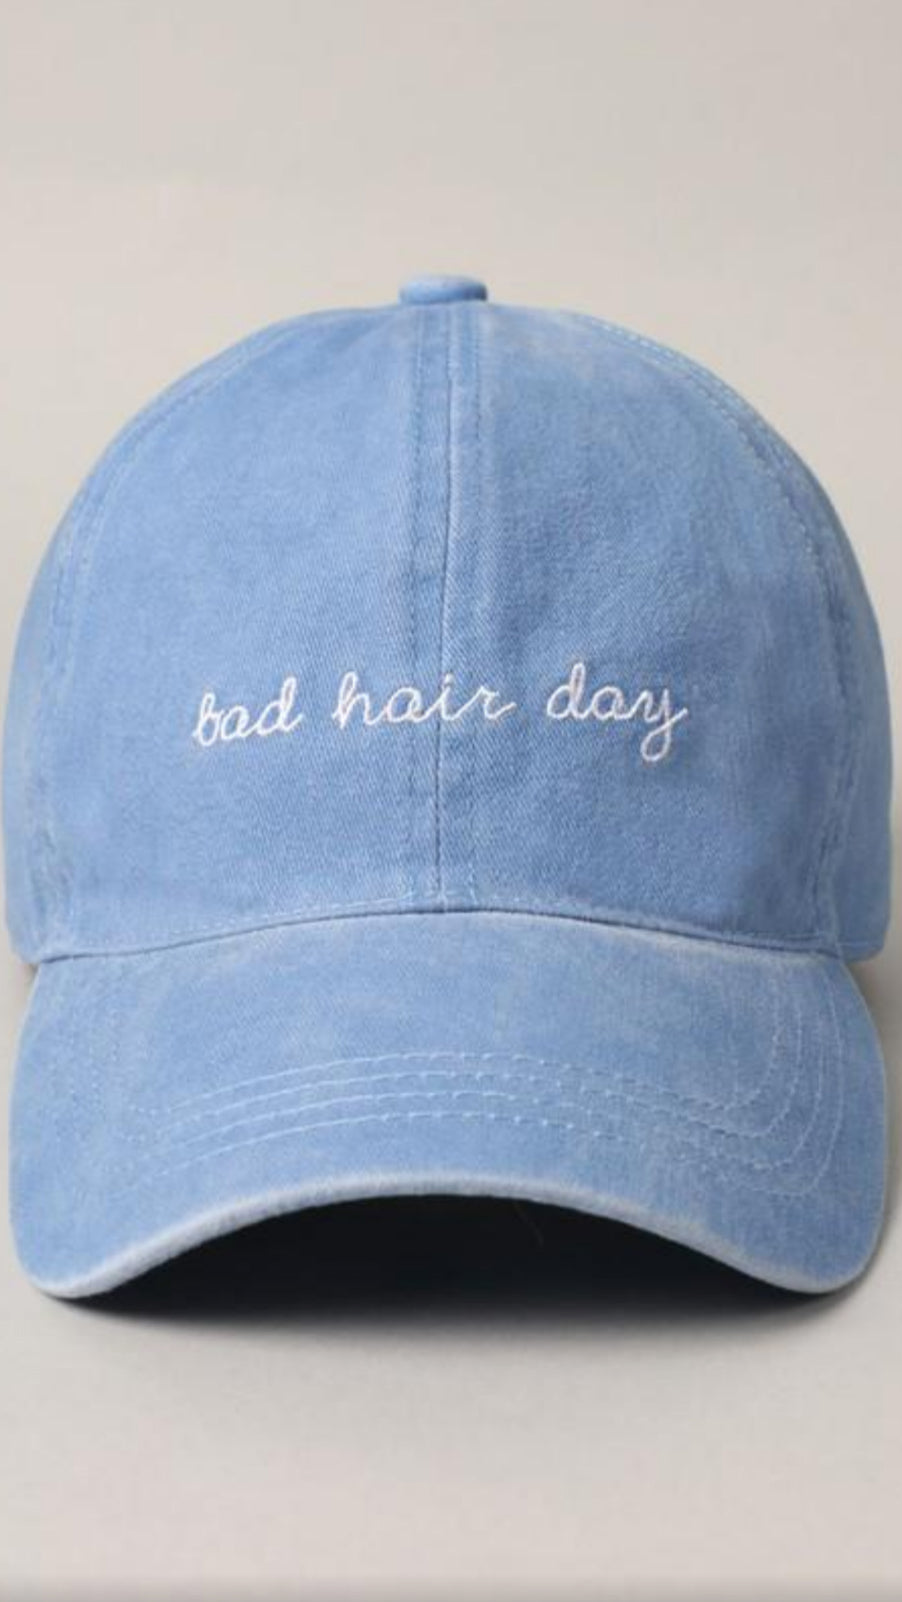 Bad Hair Day Baseball Cap - Denim Blue